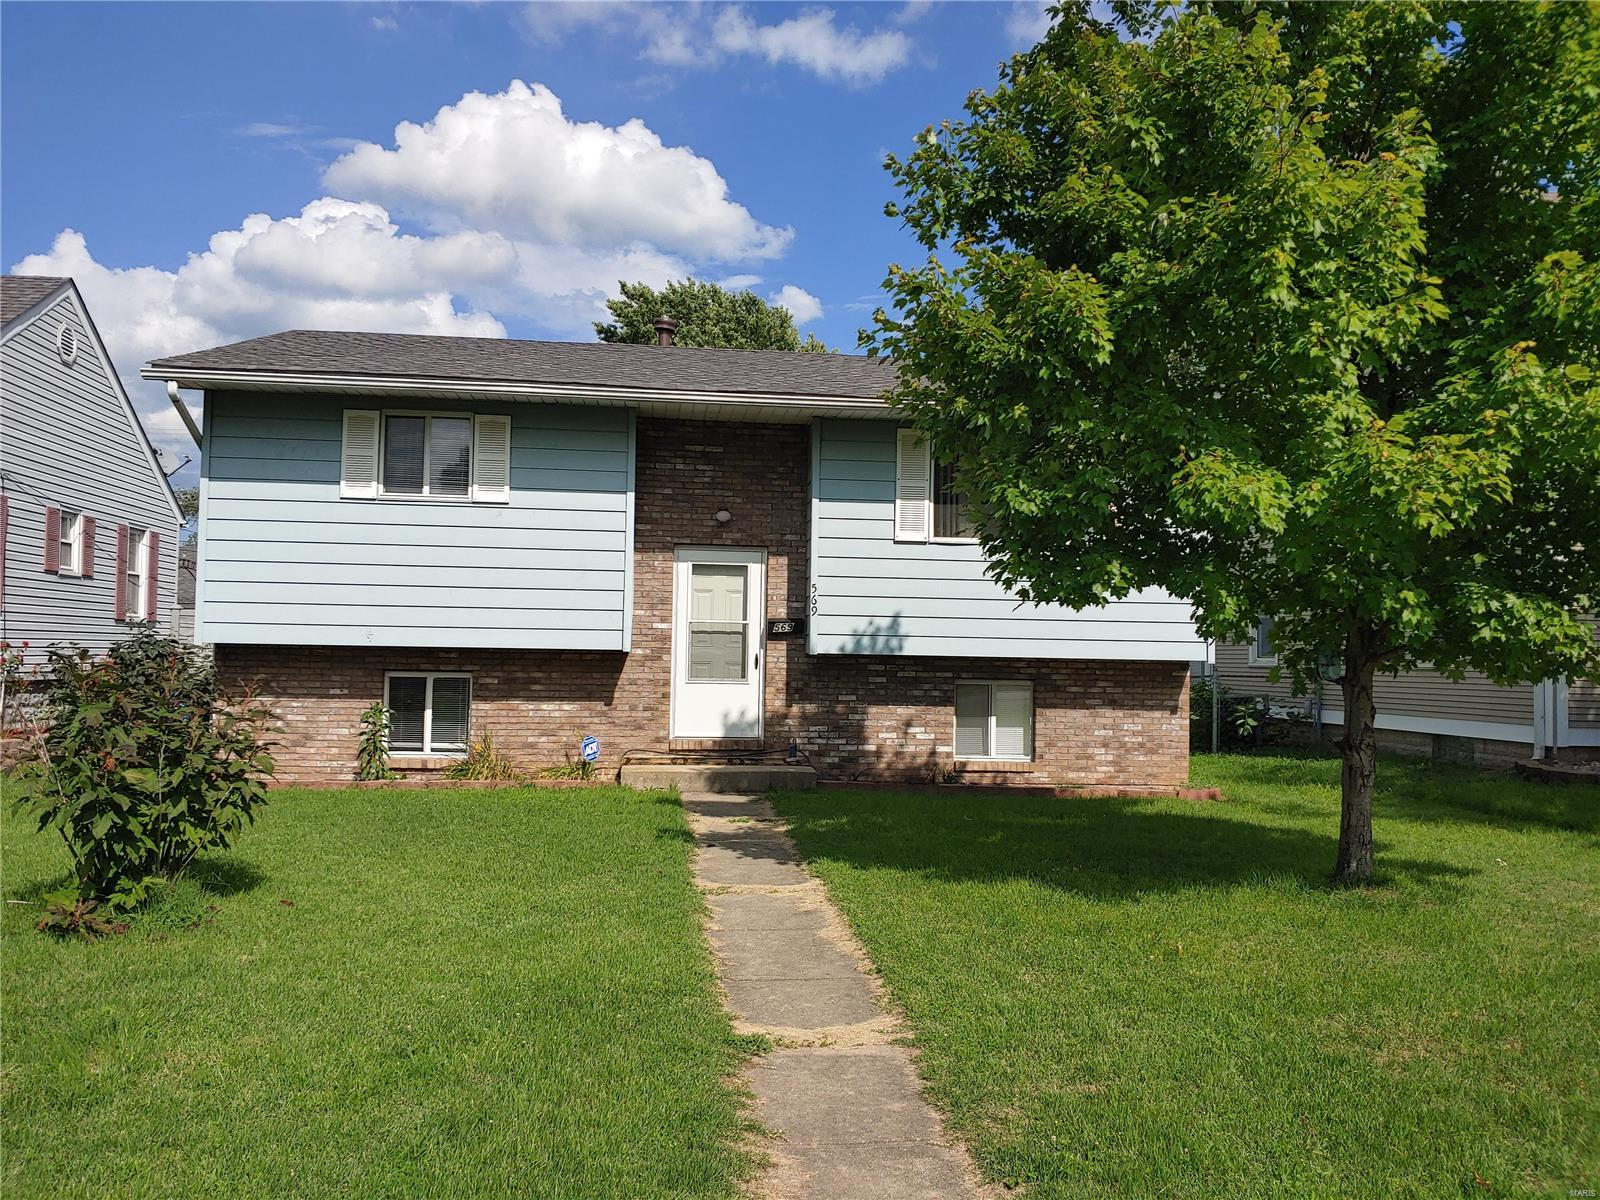 569 George Property Photo - Wood River, IL real estate listing